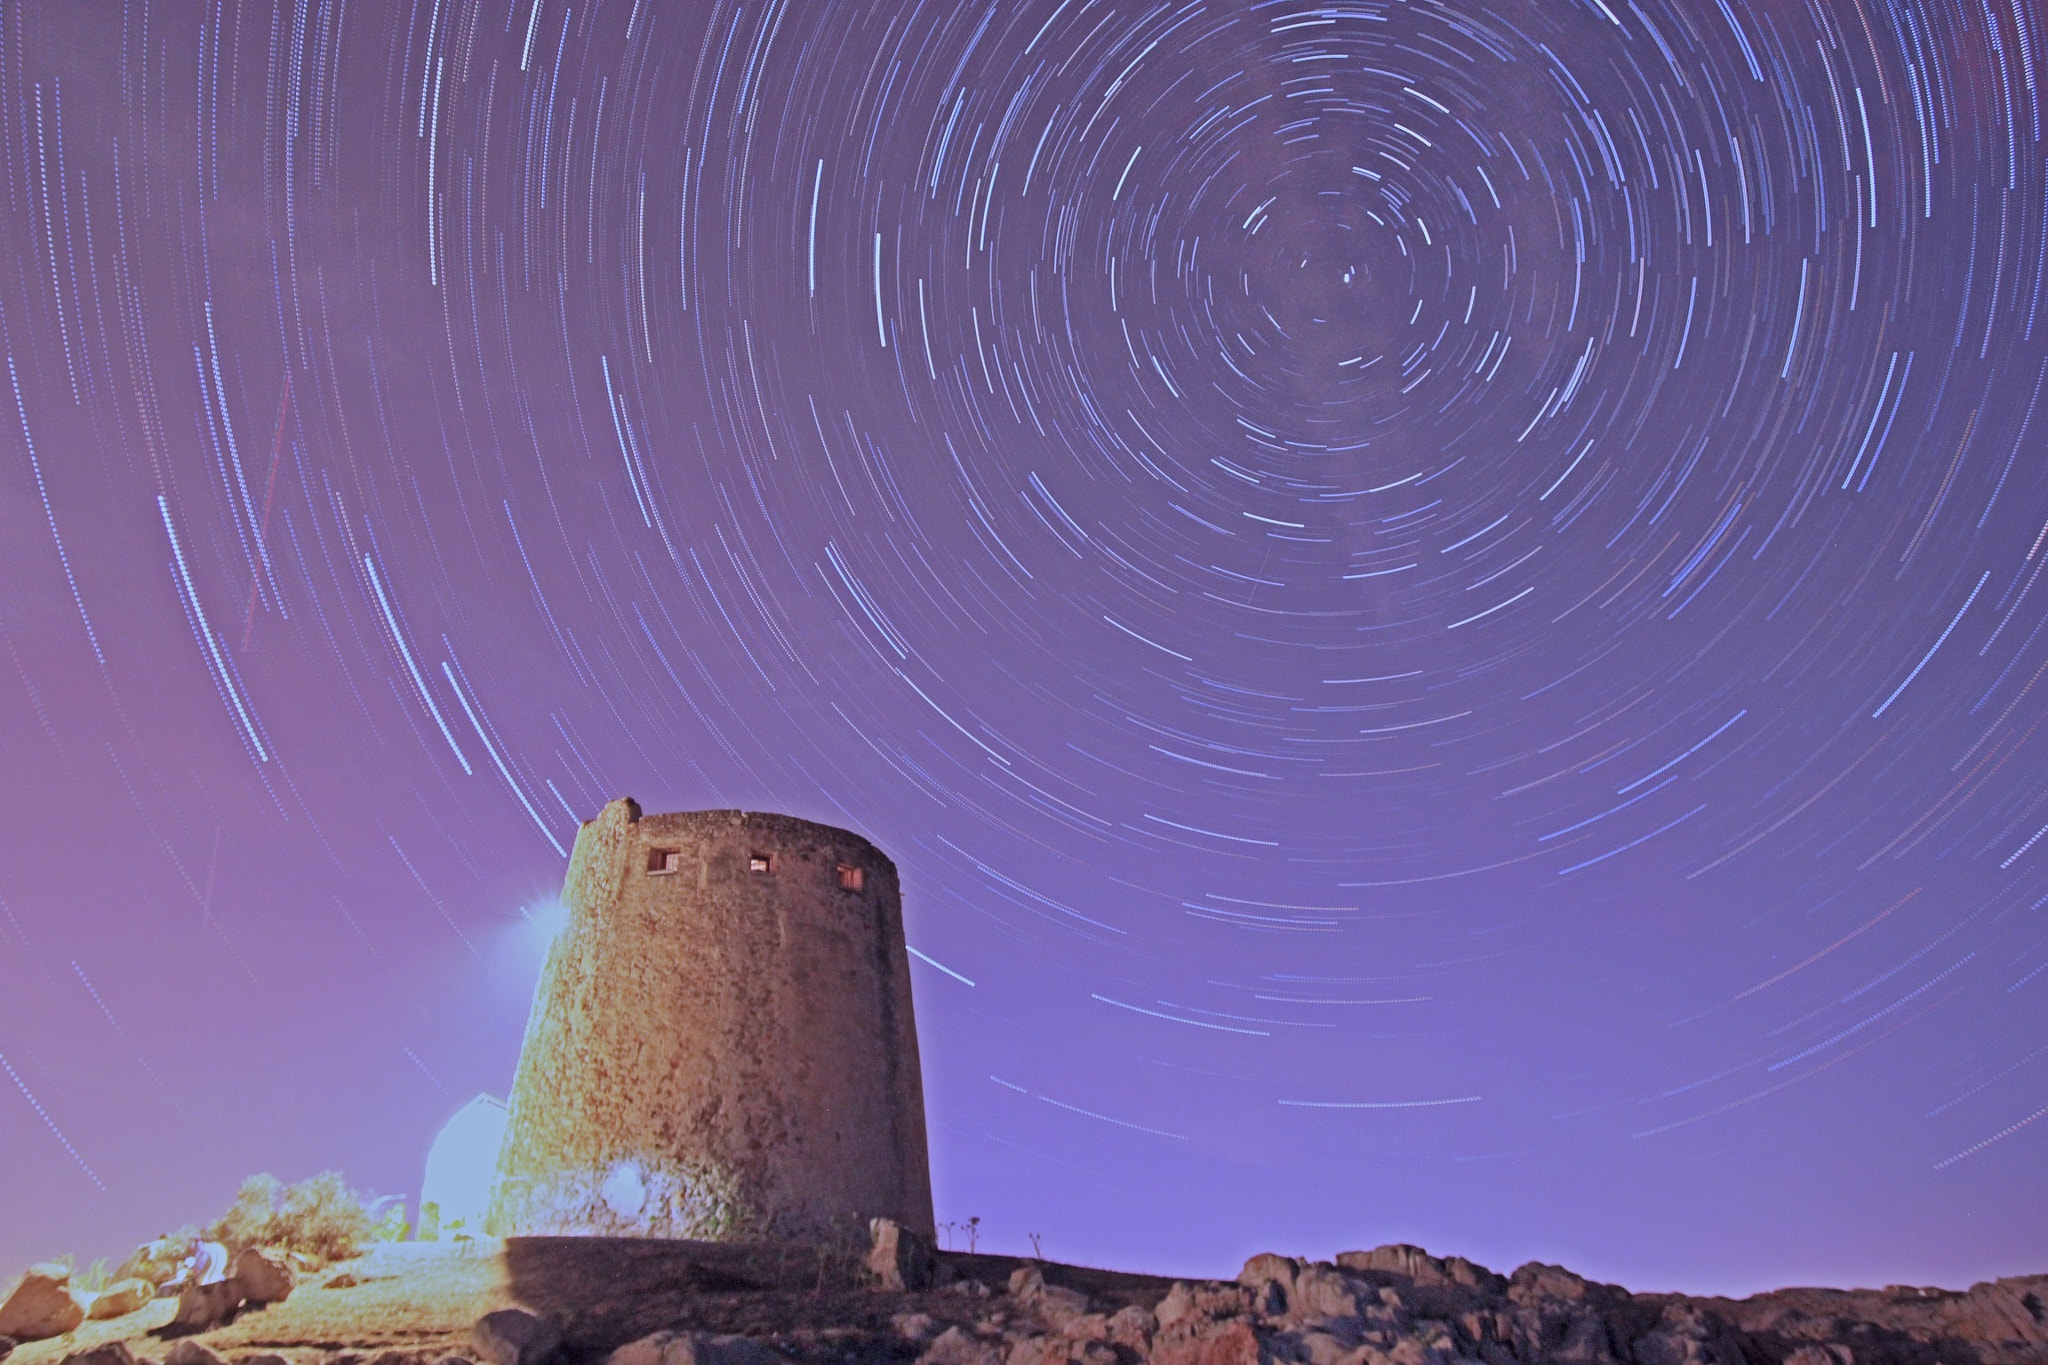 Photograph StarTrail - Torre di Barisardo by Massimo Pira on 500px